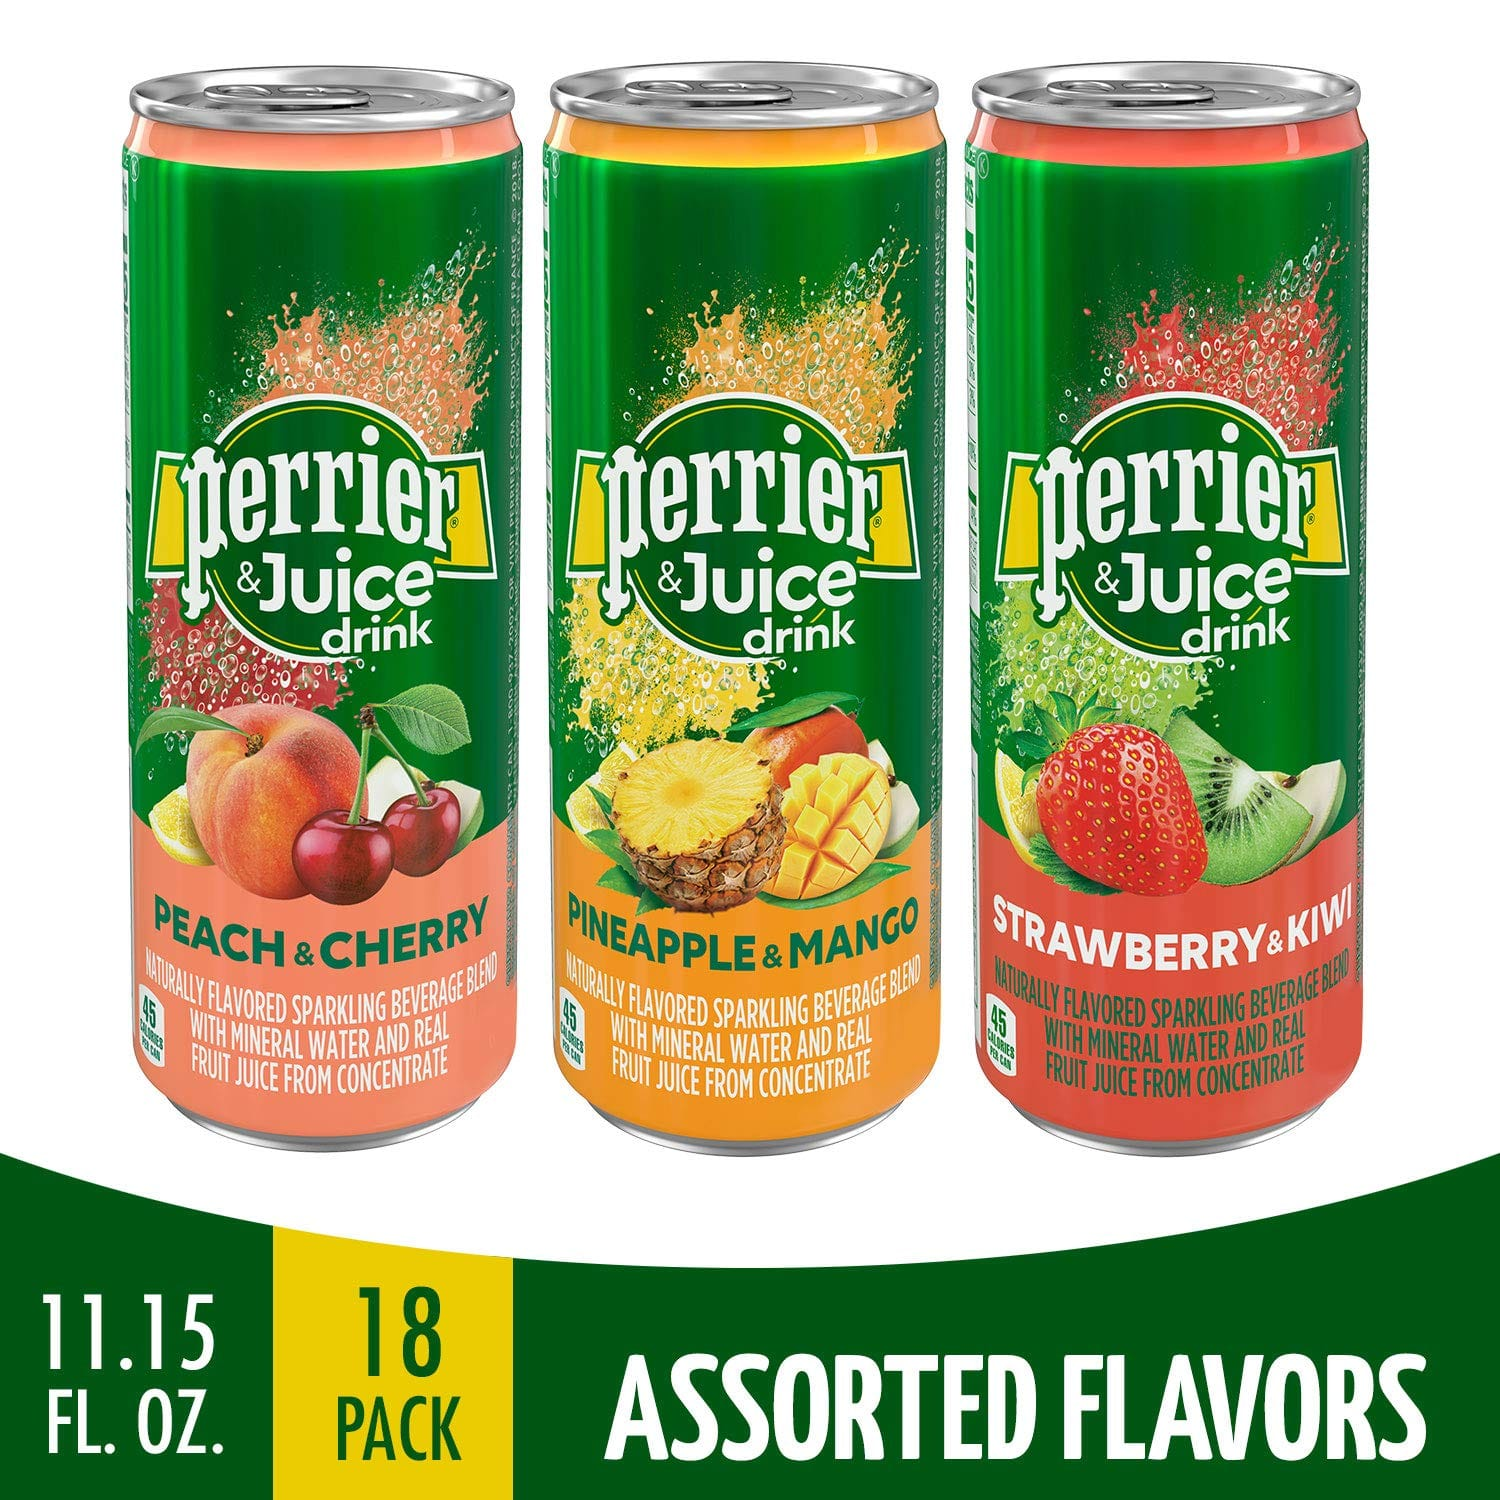 18-Pack 11.15-Oz Perrier & Juice Drink, Assorted Flavors $6.98 w/ S&S + free s/h